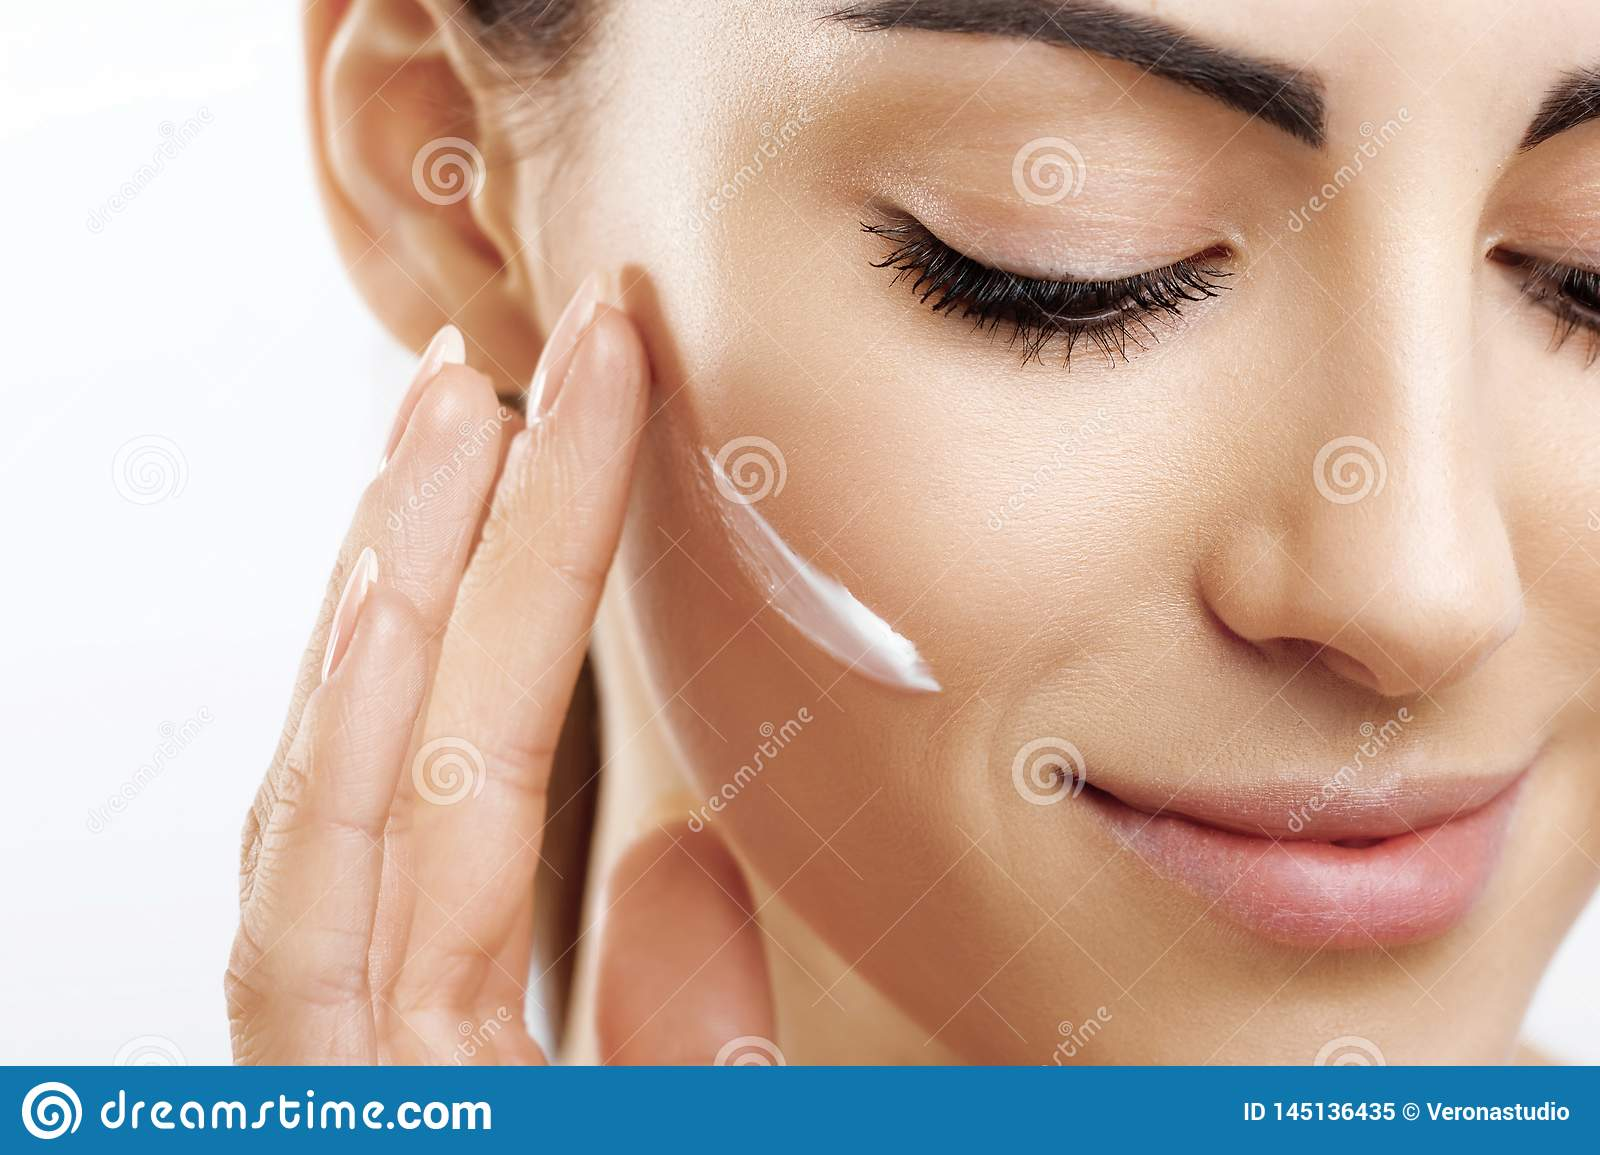 Beauty Closeup Happy Young Woman Apply Cream To Her Face Skincare And Cosmetics Concept Cosmetics Woman Face Skin Care Natural Stock Image Image Of Female Beauty 145136435